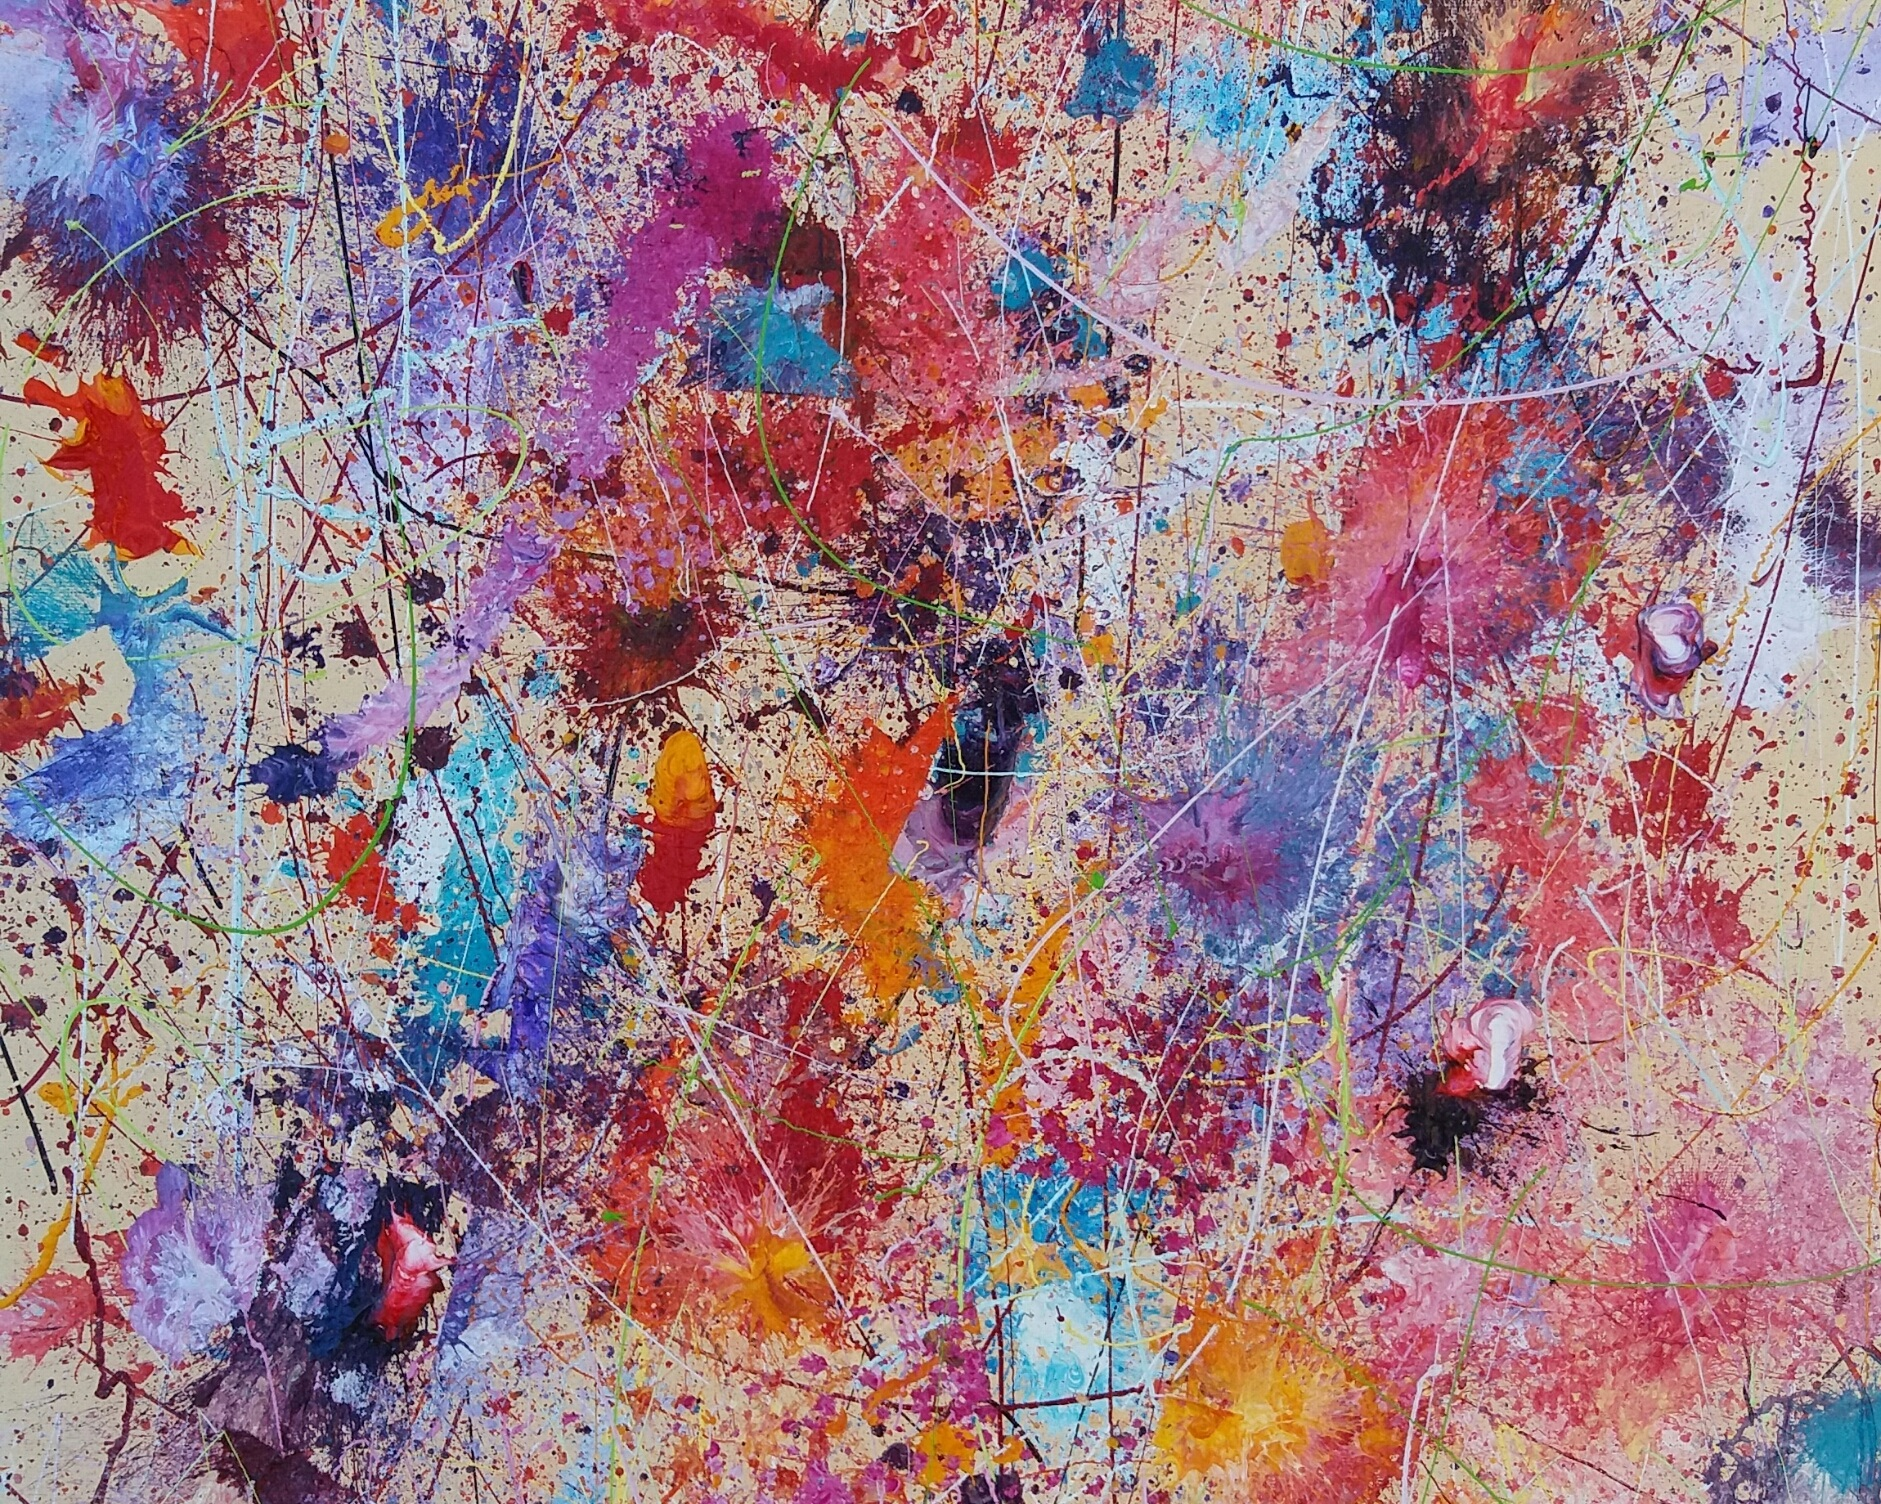 A Spontaneous Explosion of Abstract Expressionism Mixed with Experimental subconscious creation. -